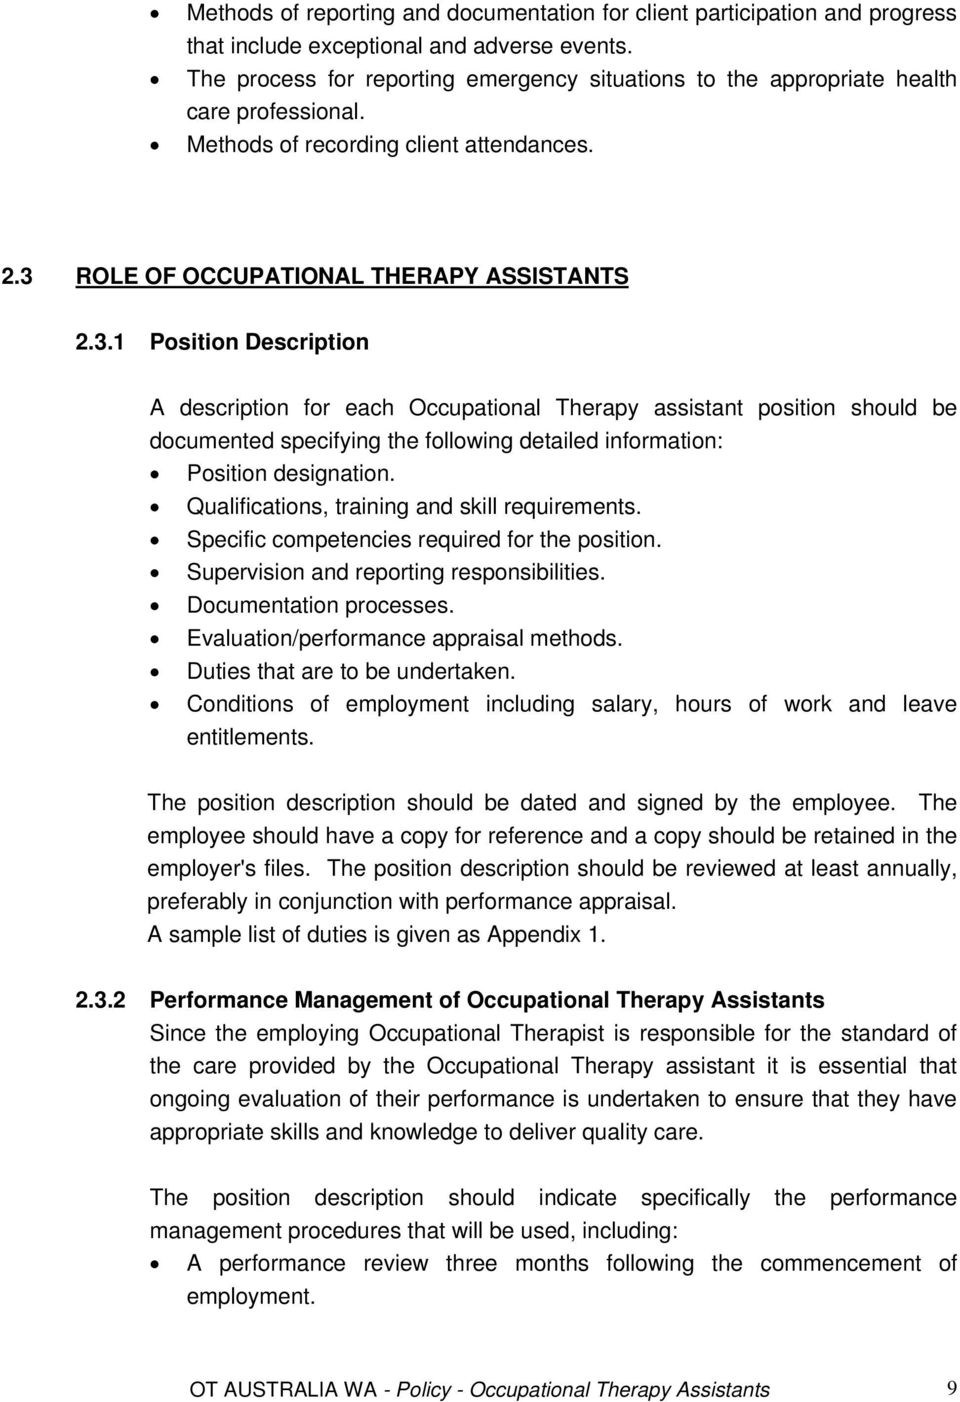 ROLE OF OCCUPATIONAL THERAPY ASSISTANTS 2.3.